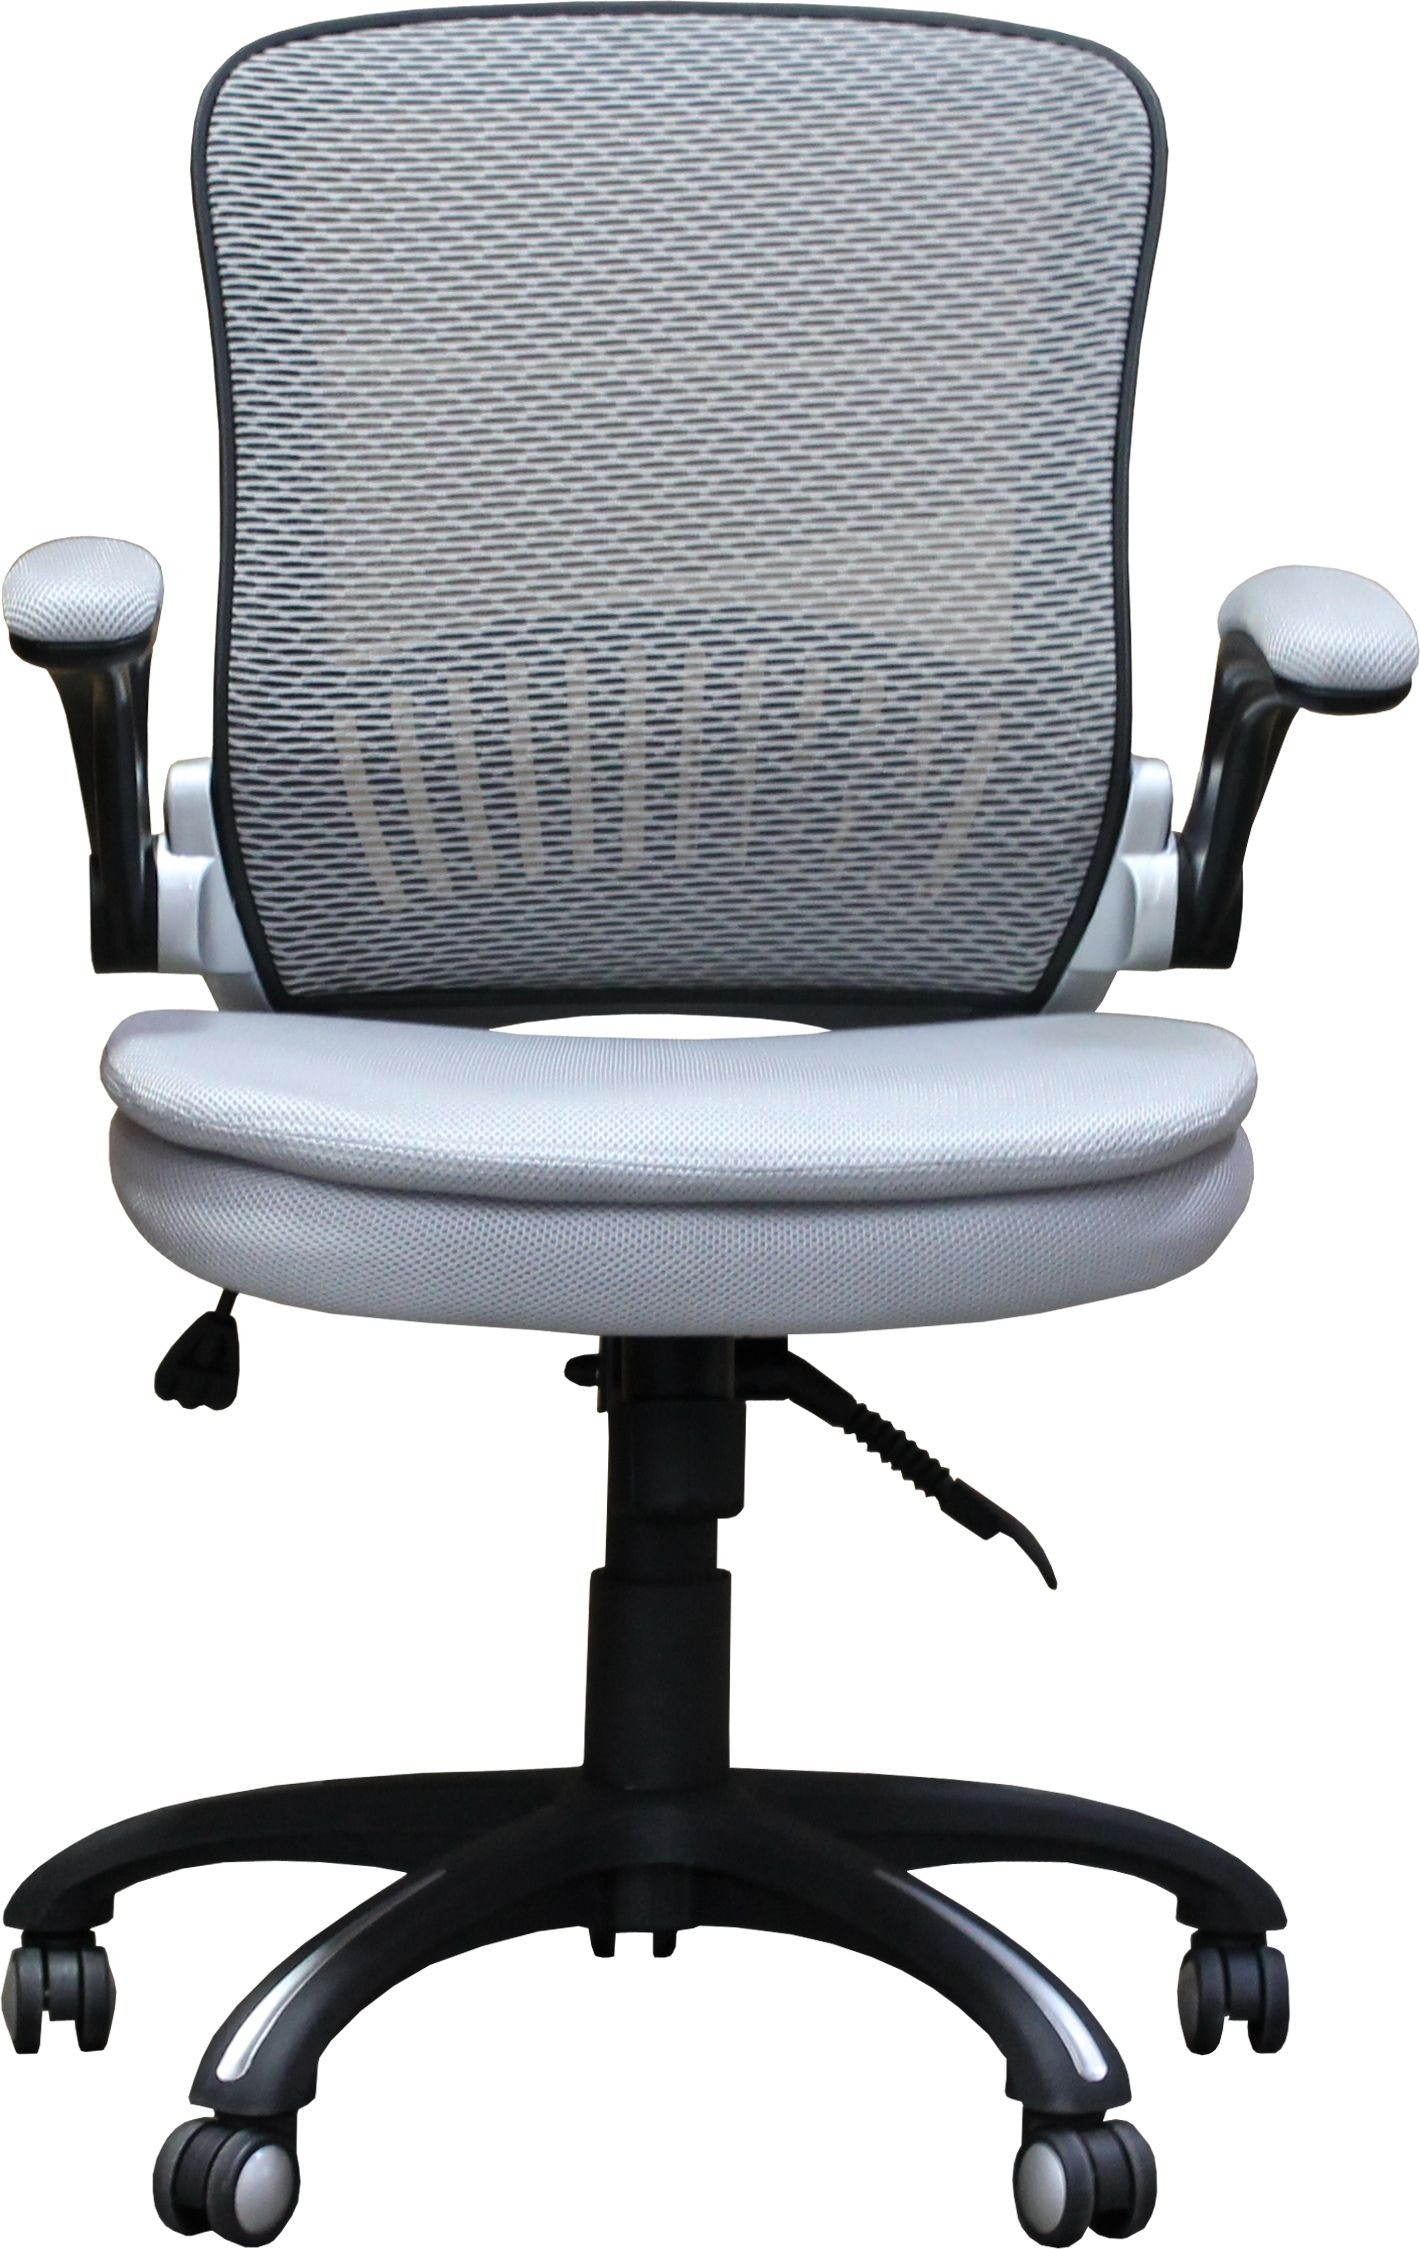 Matrix Silver Desk Chair ST:491509